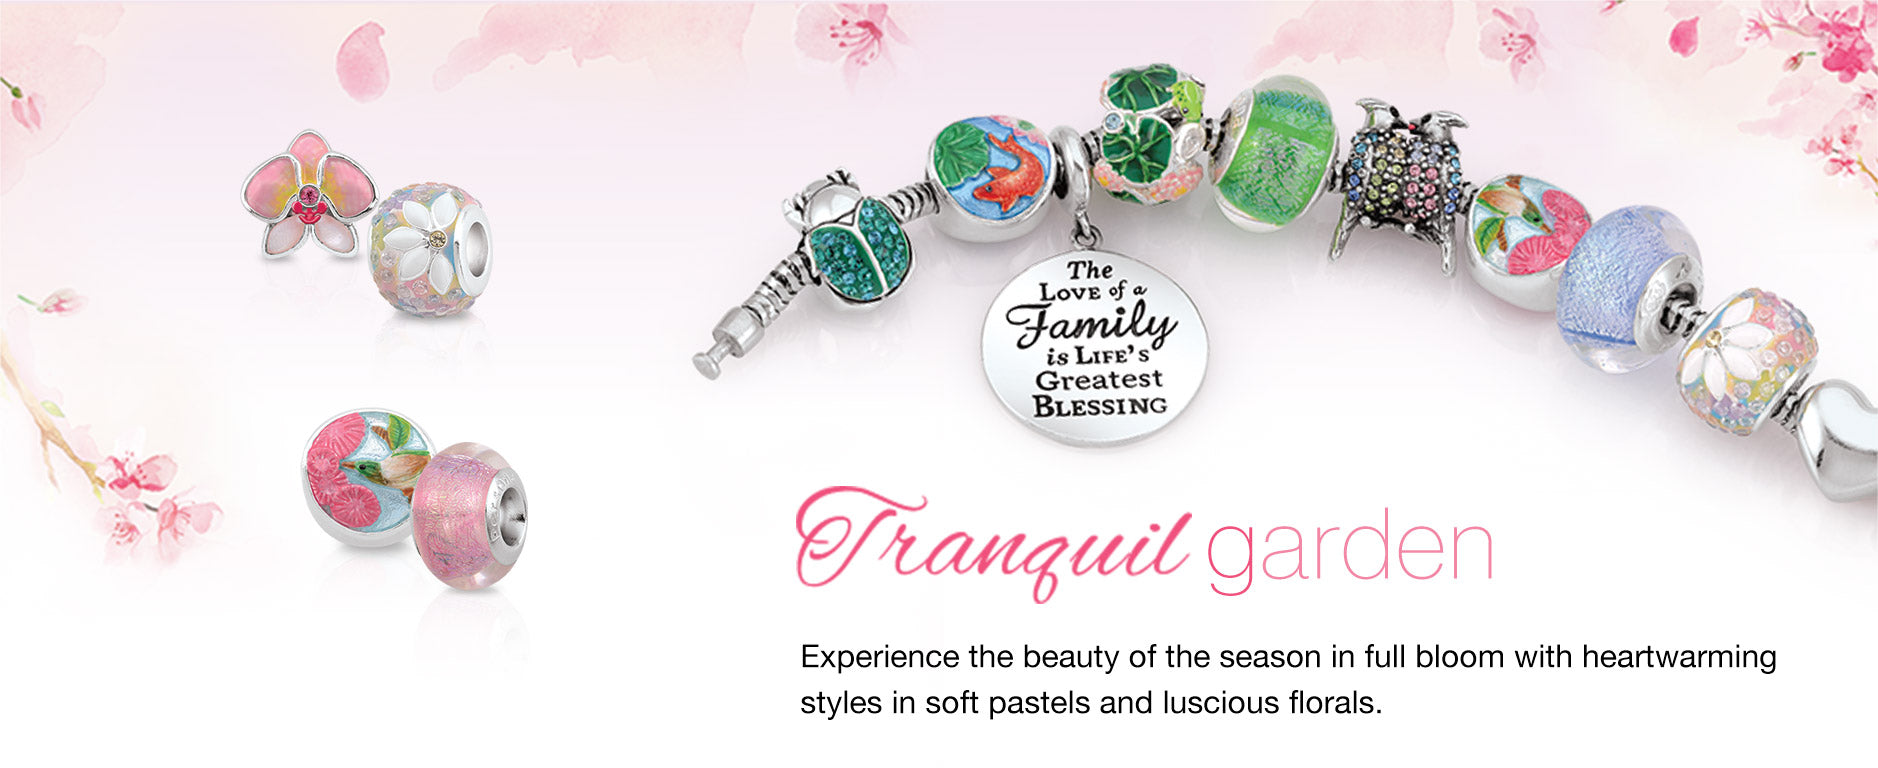 Tranquil Garden charms